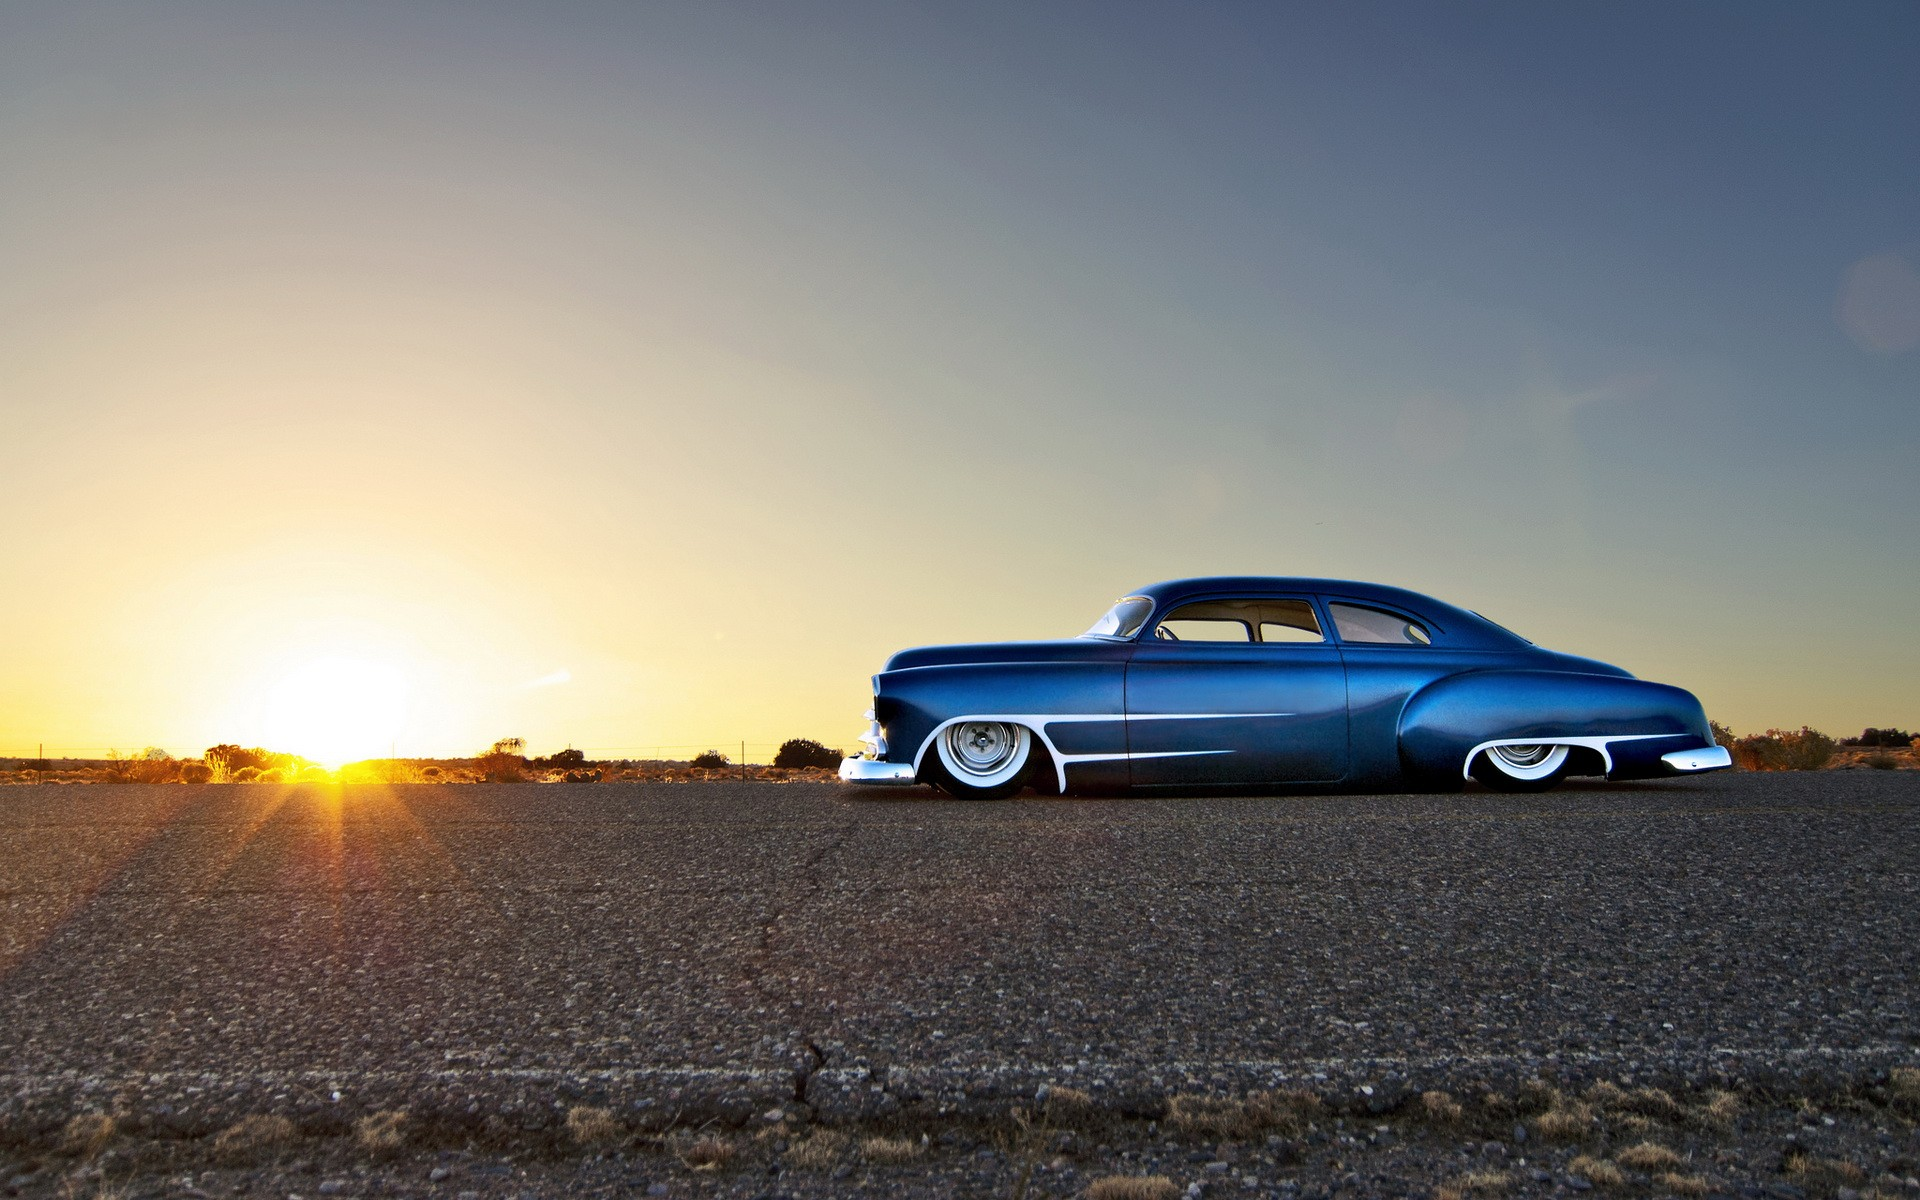 cars hot rod chevrolet old car chevy wallpaper 1920x1200